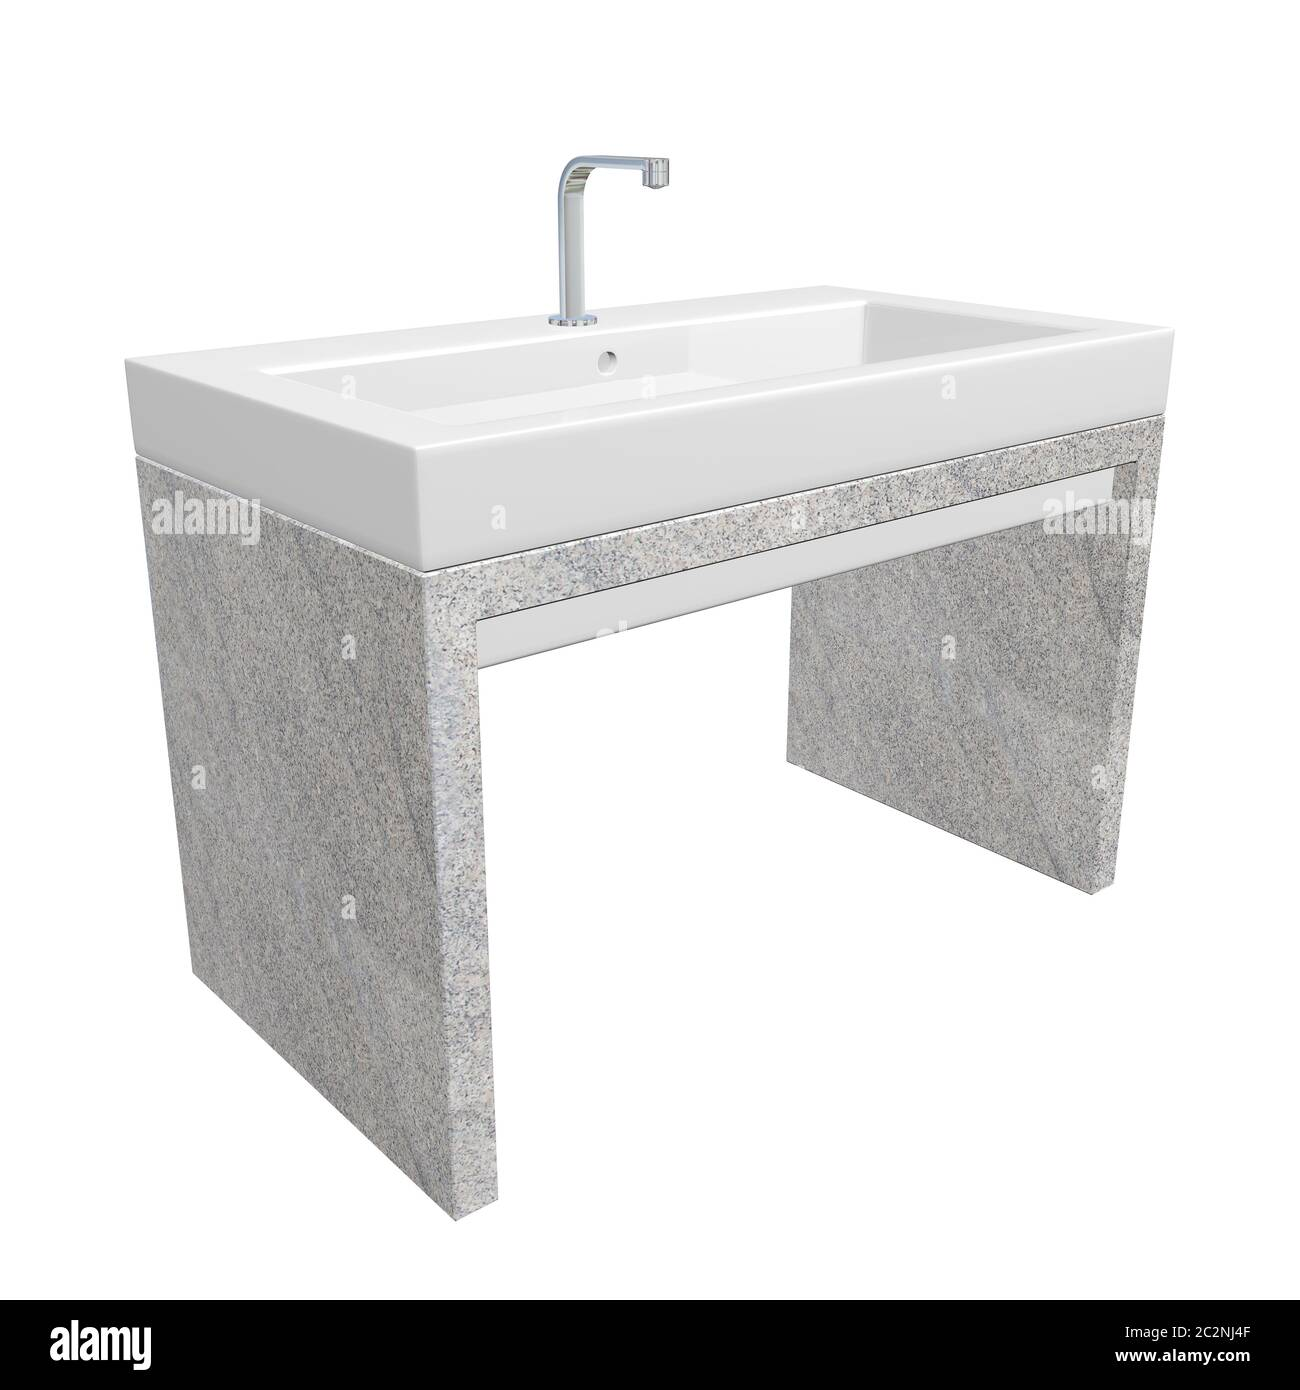 Modern Washroom Sink Set With Ceramic Or Acrylic Wash Basin Chrome Fixtures And Granite Base 3d Illustration Isolated Against A White Background Stock Photo Alamy